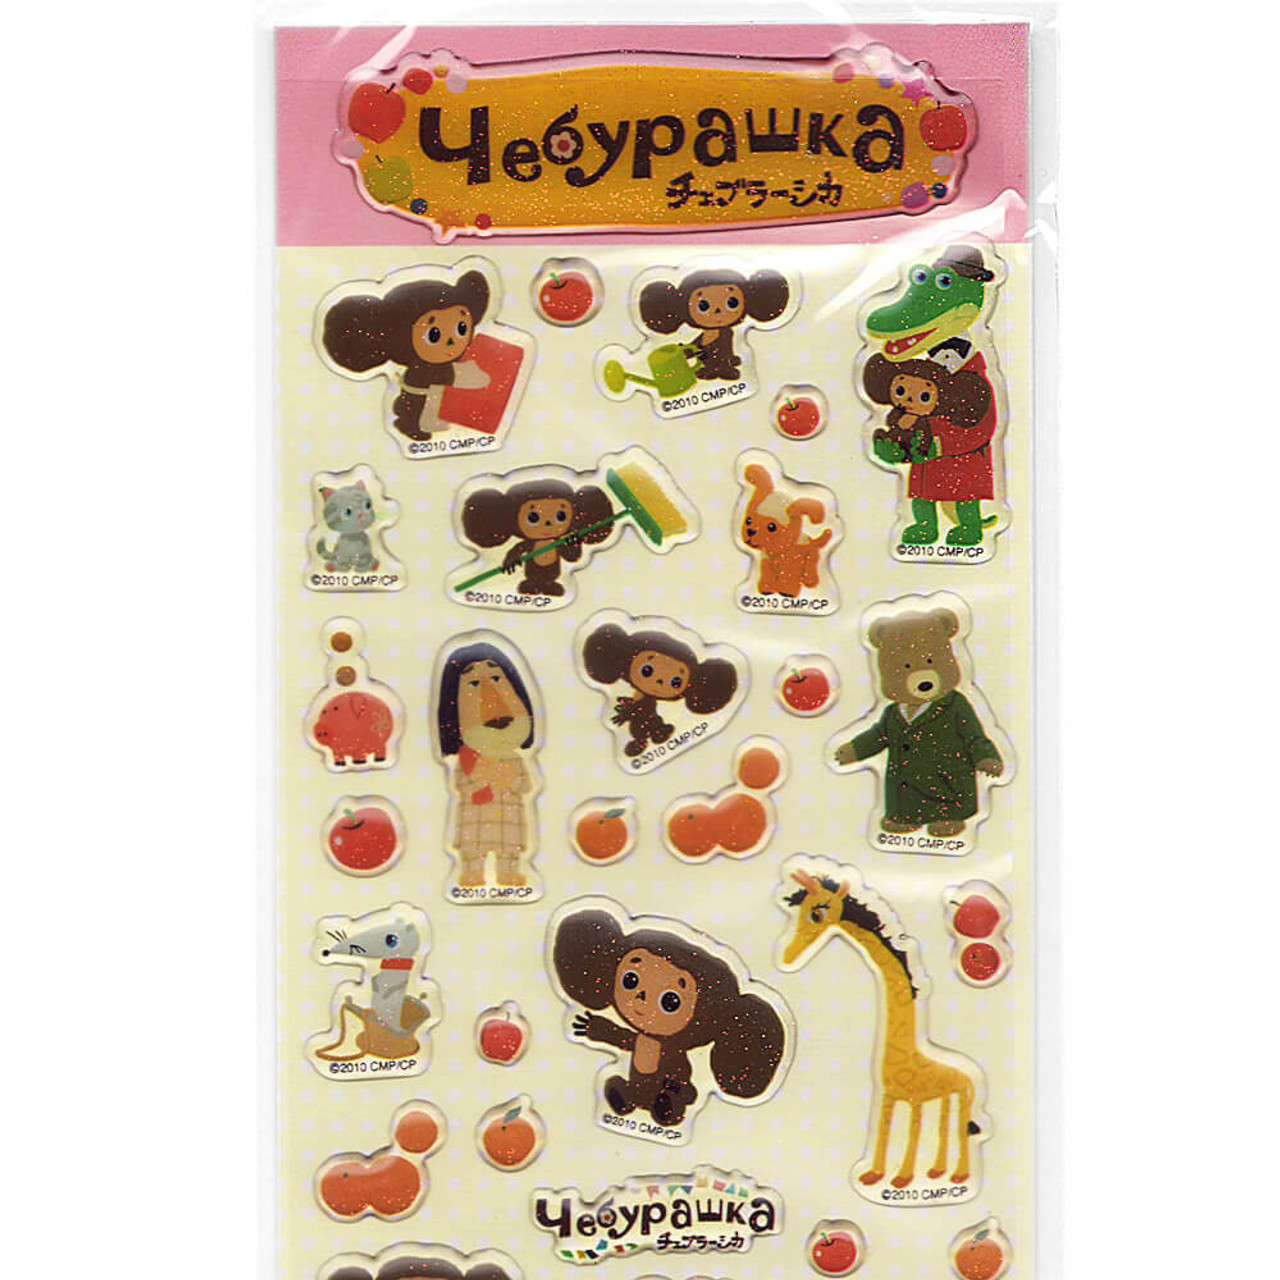 Cheburashka Yeoypawka 3D Puffy Sticker CHST03 - Zoo ( Top Part View )